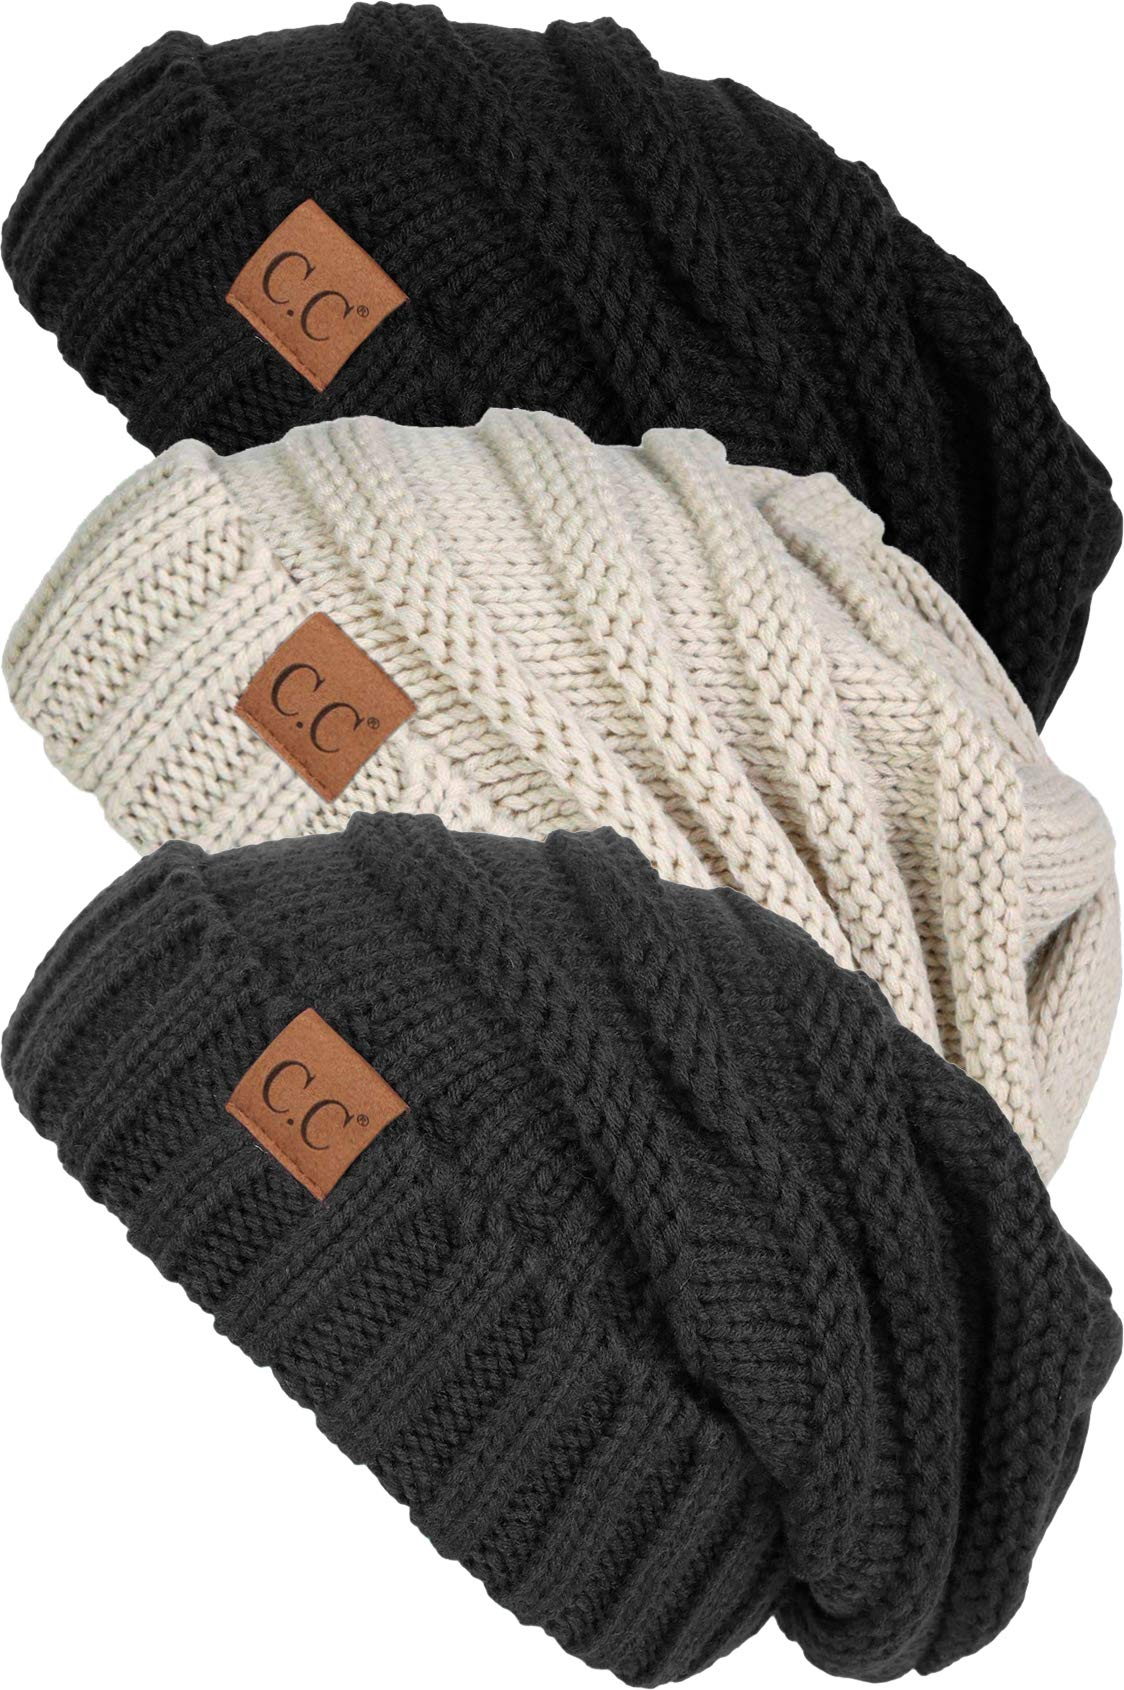 H-6100-3-066066 Oversized Beanie Bundle - Black, Beige, Melange Grey (3 Pack)